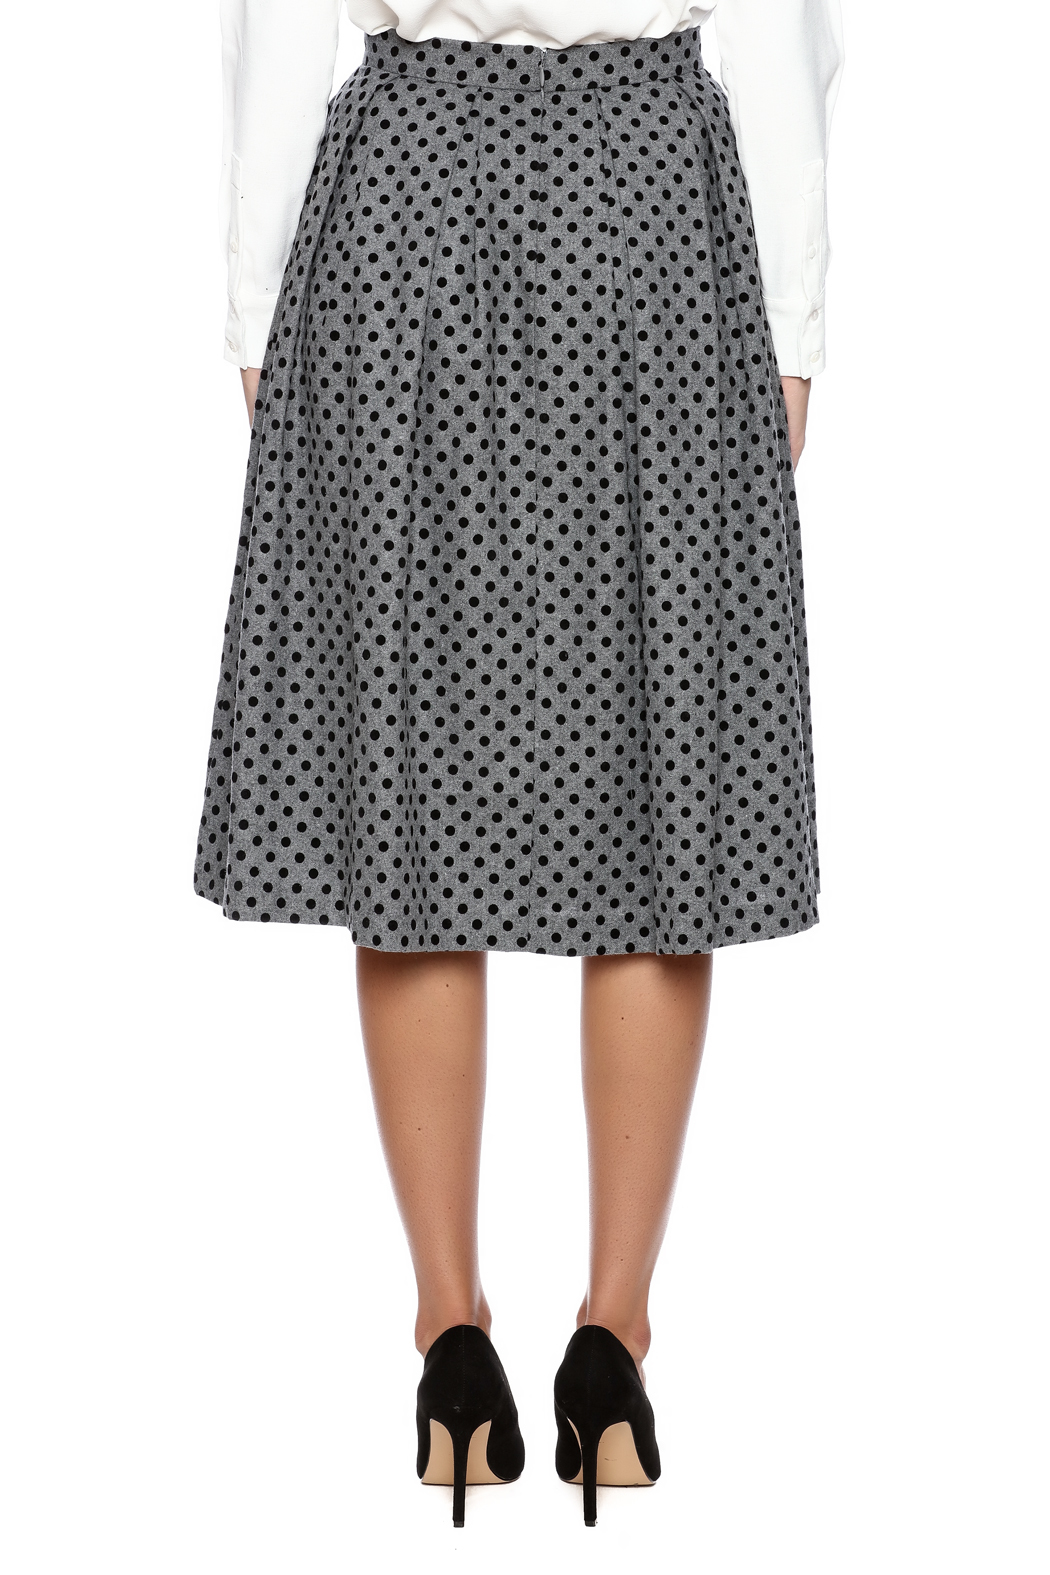 FRNCH Polka Dot Pleat Skirt - Back Cropped Image